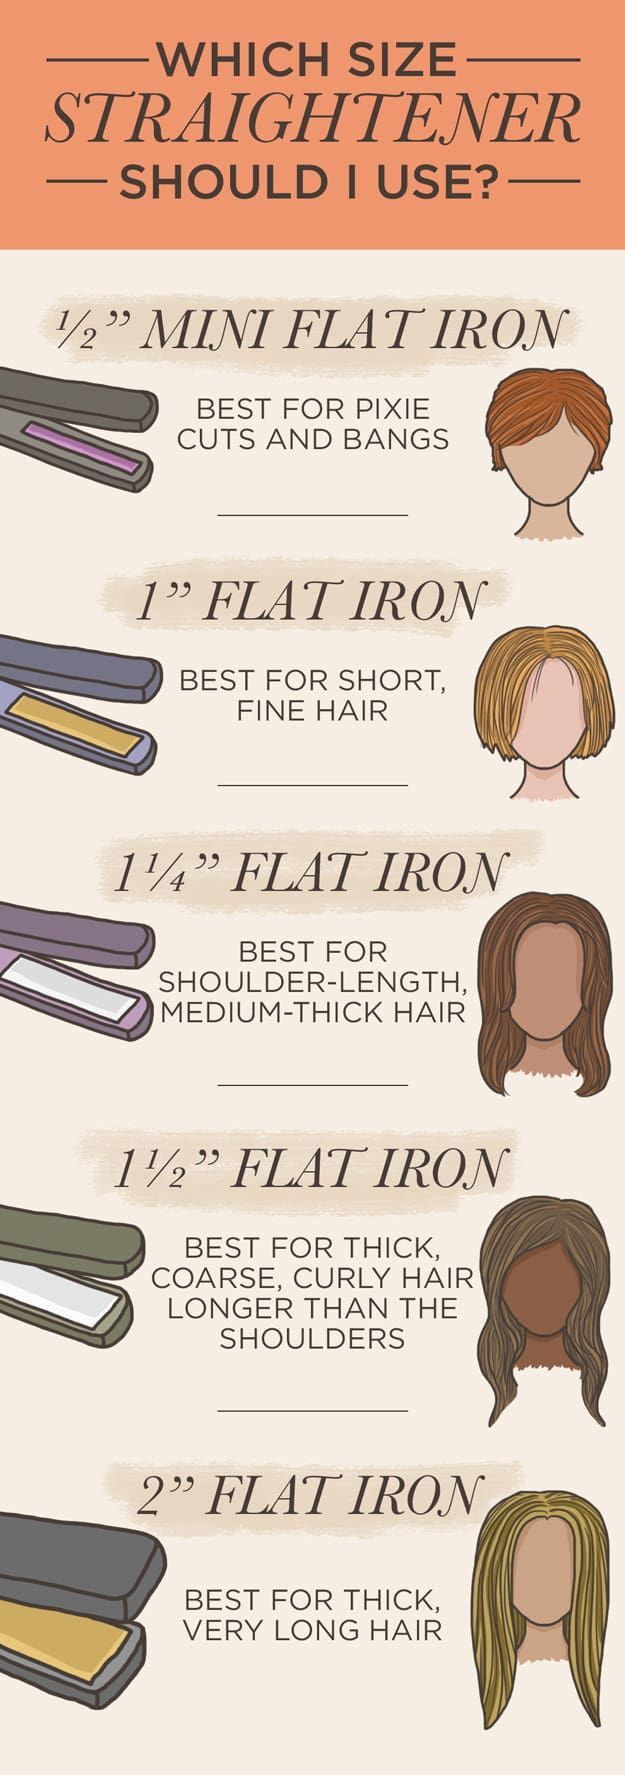 Learn some advanced flat iron techniques here.